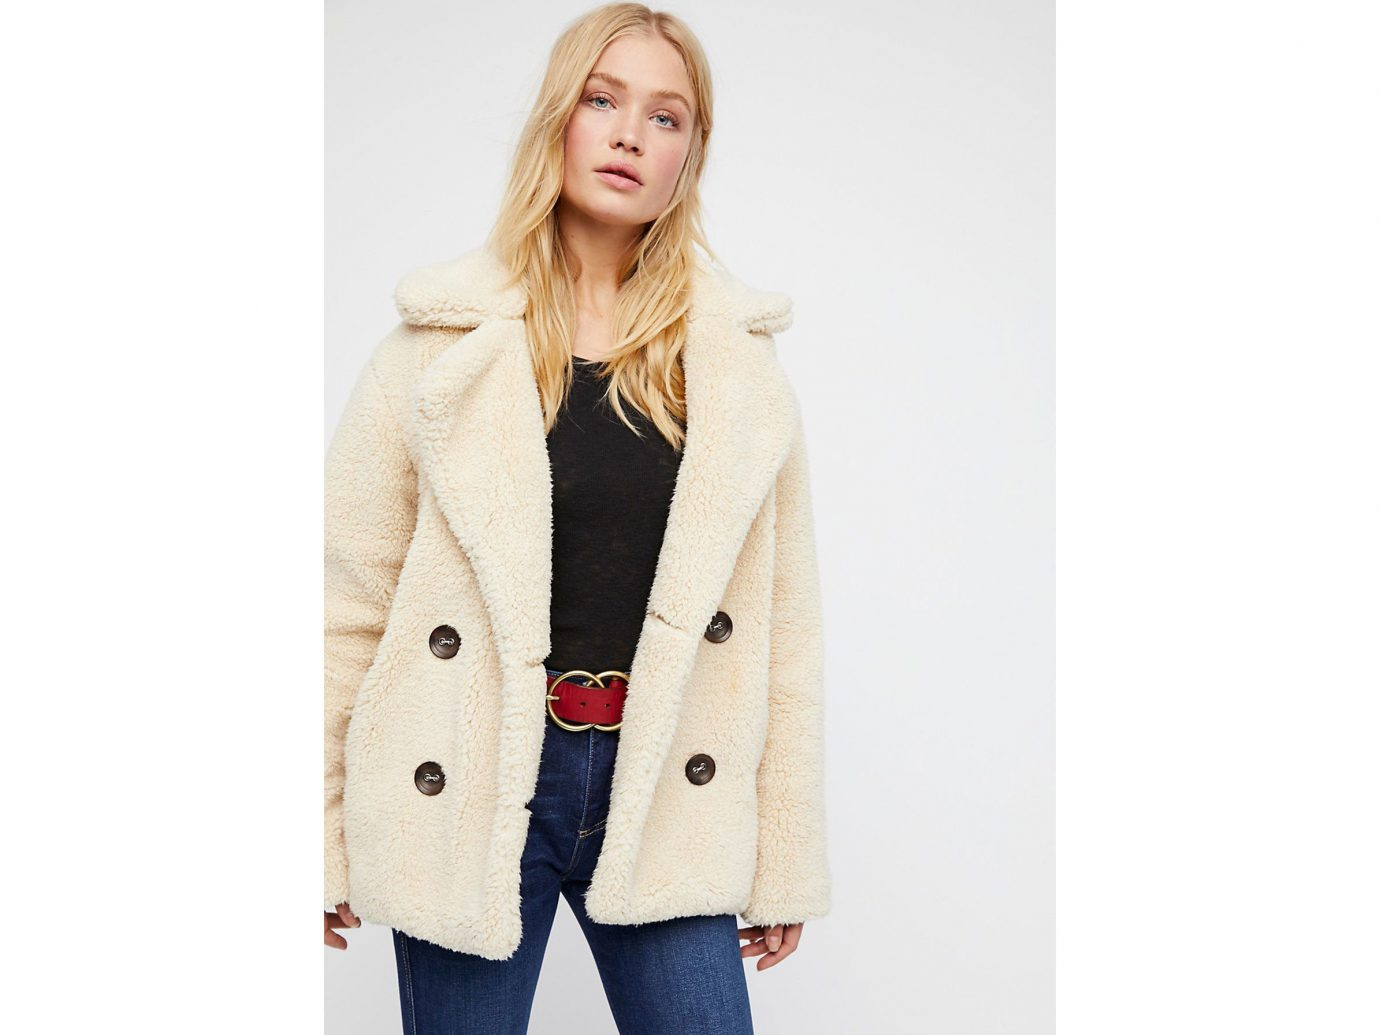 City NYC Style + Design Travel Shop clothing person coat wearing posing fashion model fur woolen overcoat beige fur clothing jacket dressed